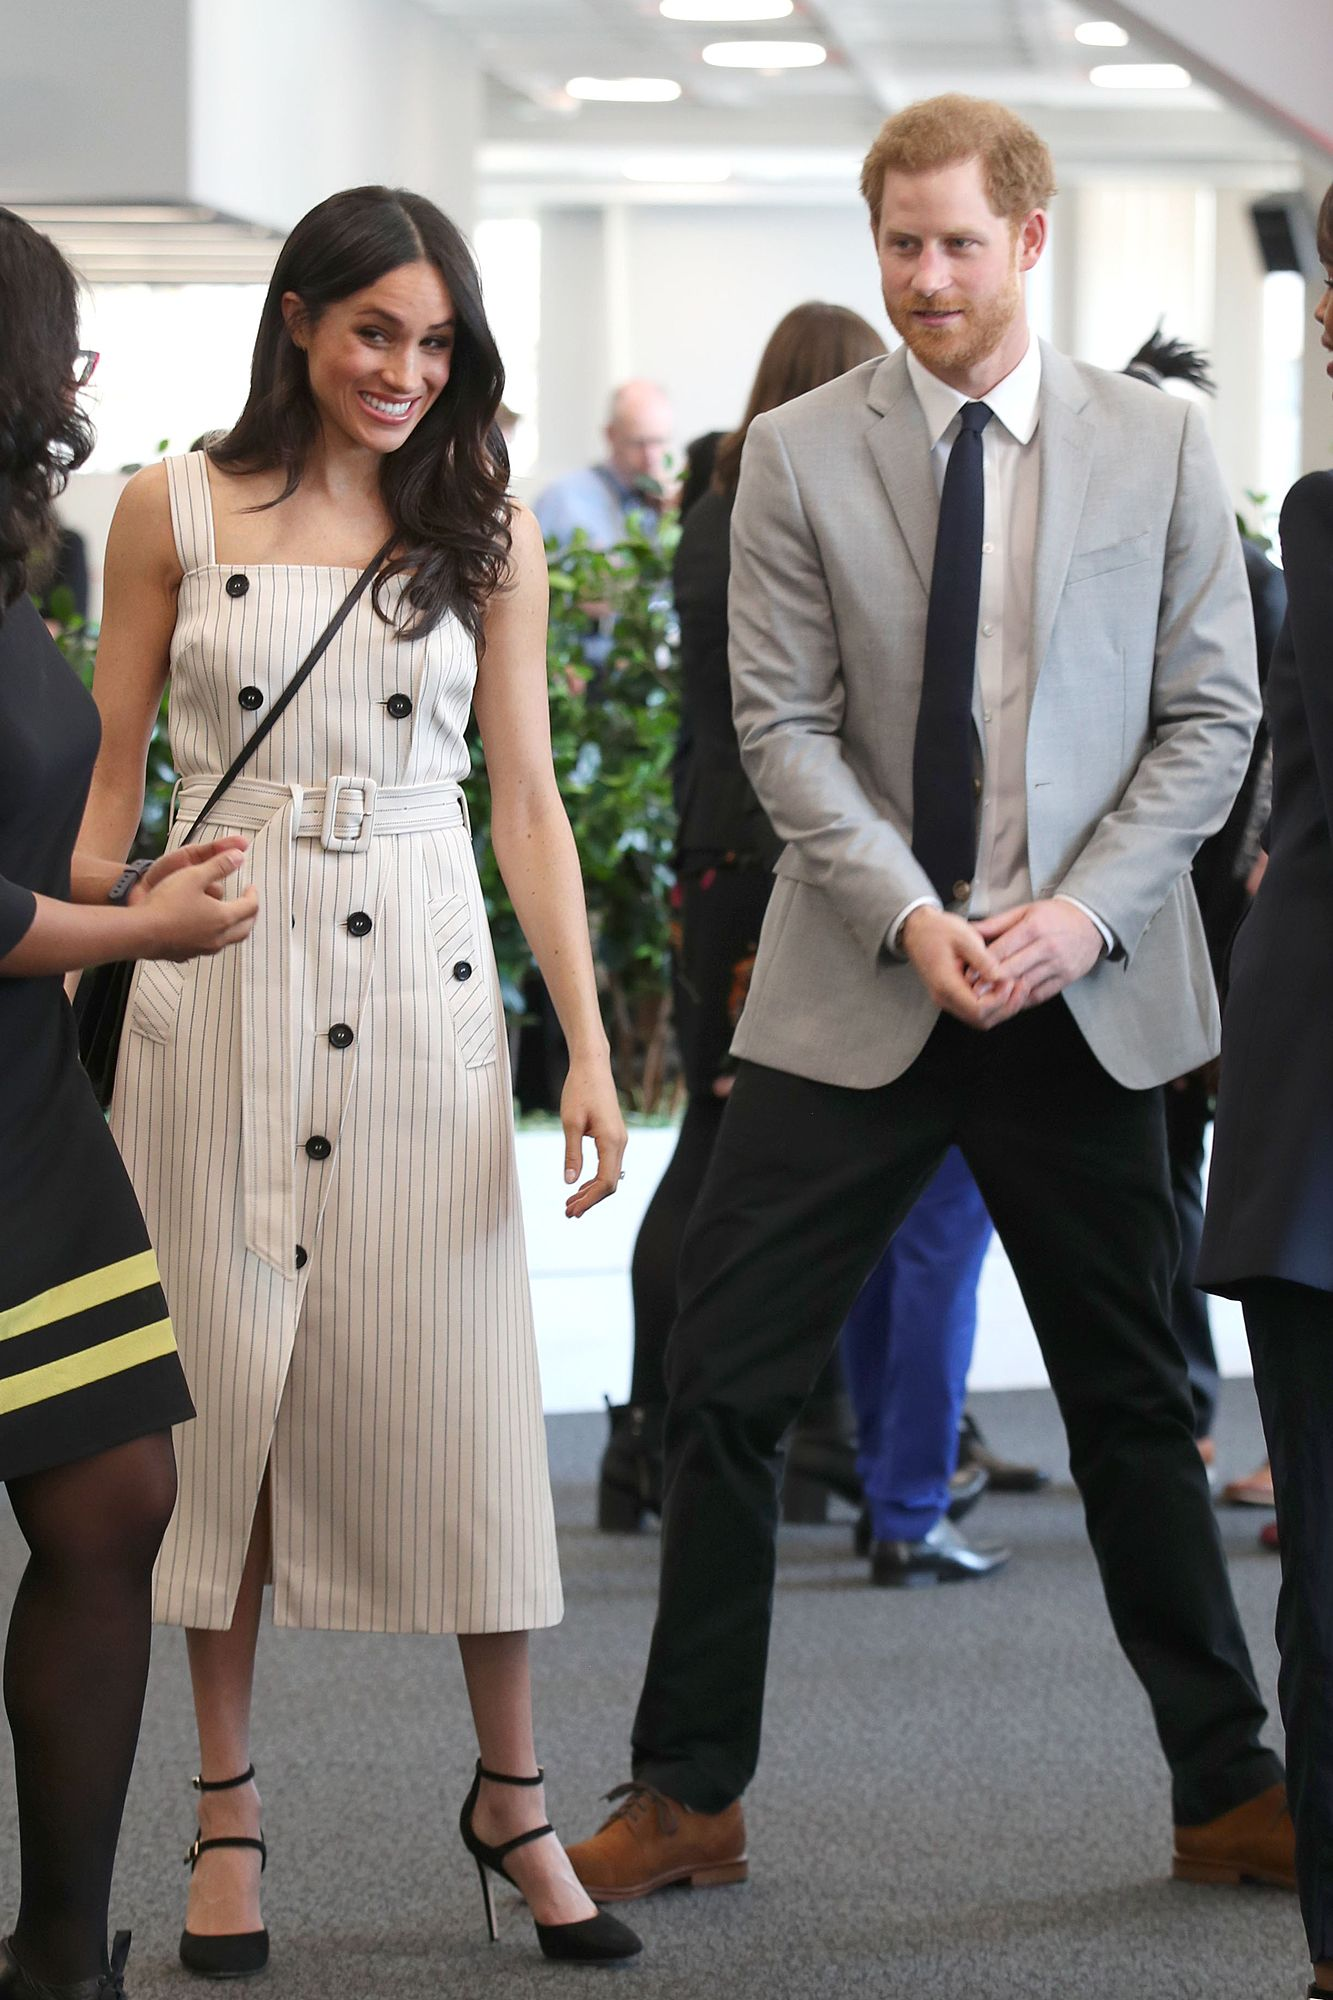 e8b9befc54b3 Bride-to-Be Meghan Markle Wears a Chic White Dress – One Month ...